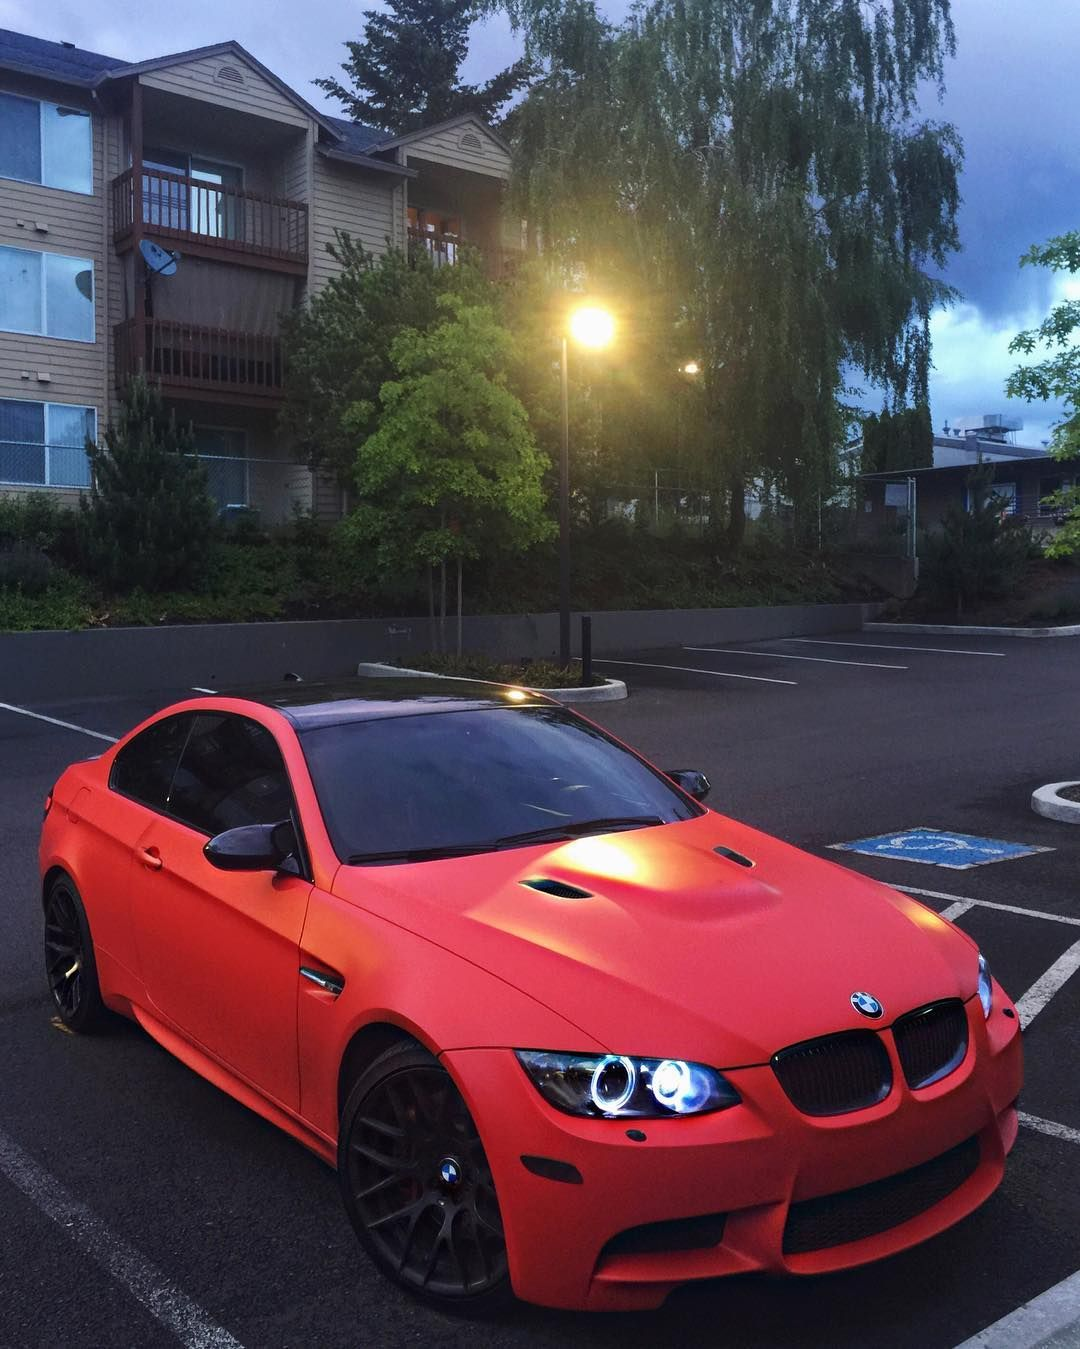 Modified Bmw 335i Coupe : modified, coupe, Ignanttrs, Dream, Coupe,